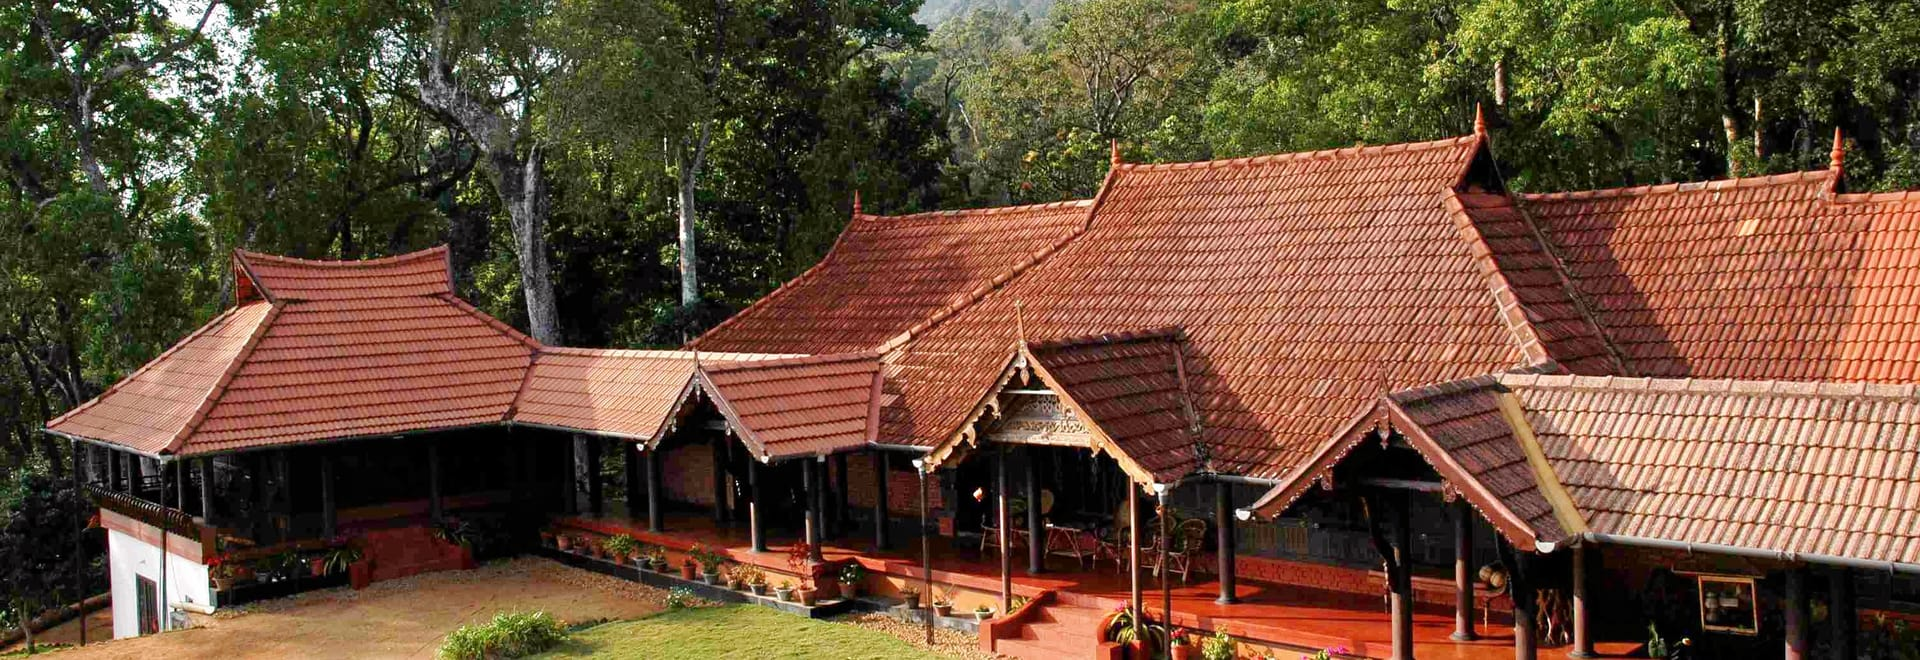 Homestays Around Bangalore That You Will Miss After Staying In Them - Top 10 destinations around the world for homestays